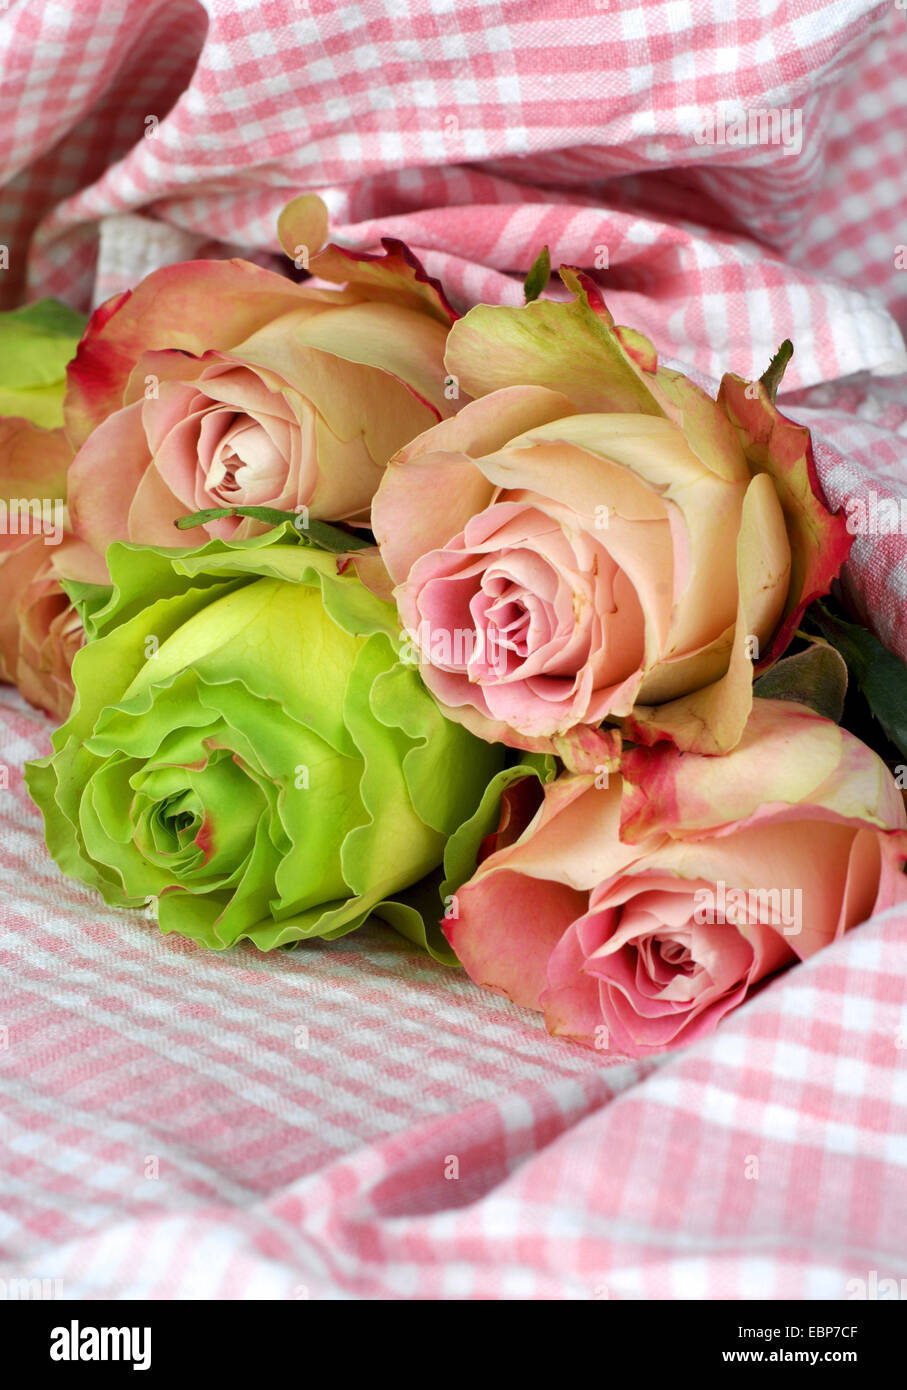 roses on chequered fabric - Stock Image